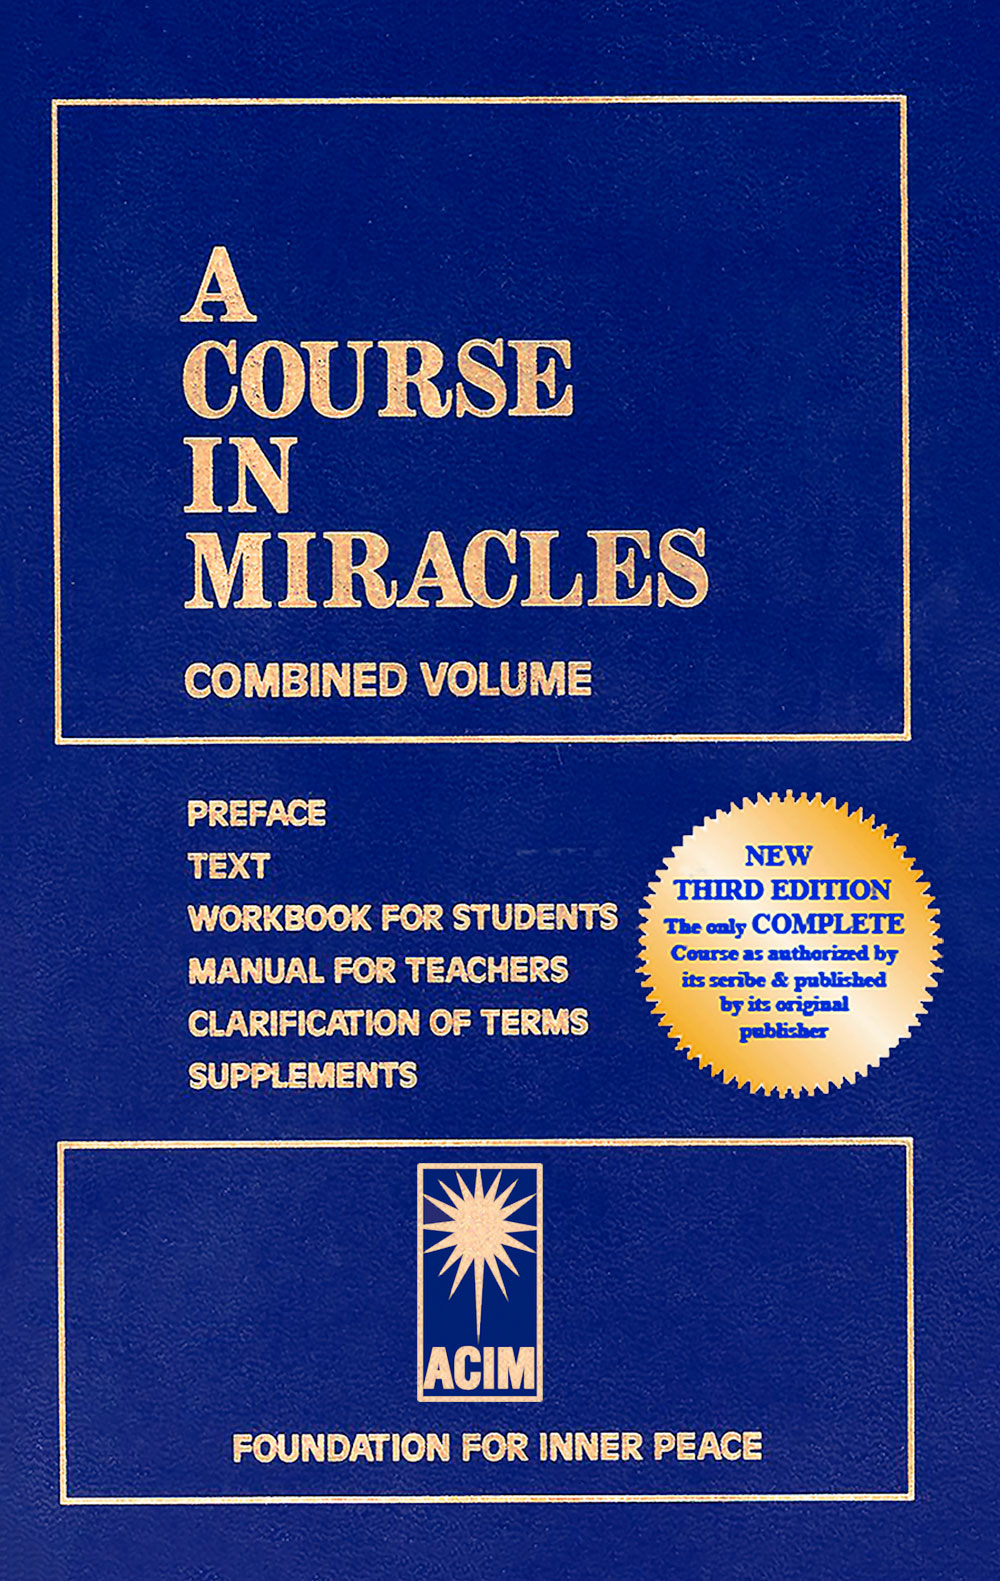 photo - book cover: A Course in Miracles (ACIM) - Combined Volume: Preface, Text, Workbook for Students, Manual for Teachers, Clarification of Terms, Supplements - Foundation for Inner Peace; New Third Edition: The only COMPLETE Course as authorized by its scribe & published by its original publisher: English book; front cover